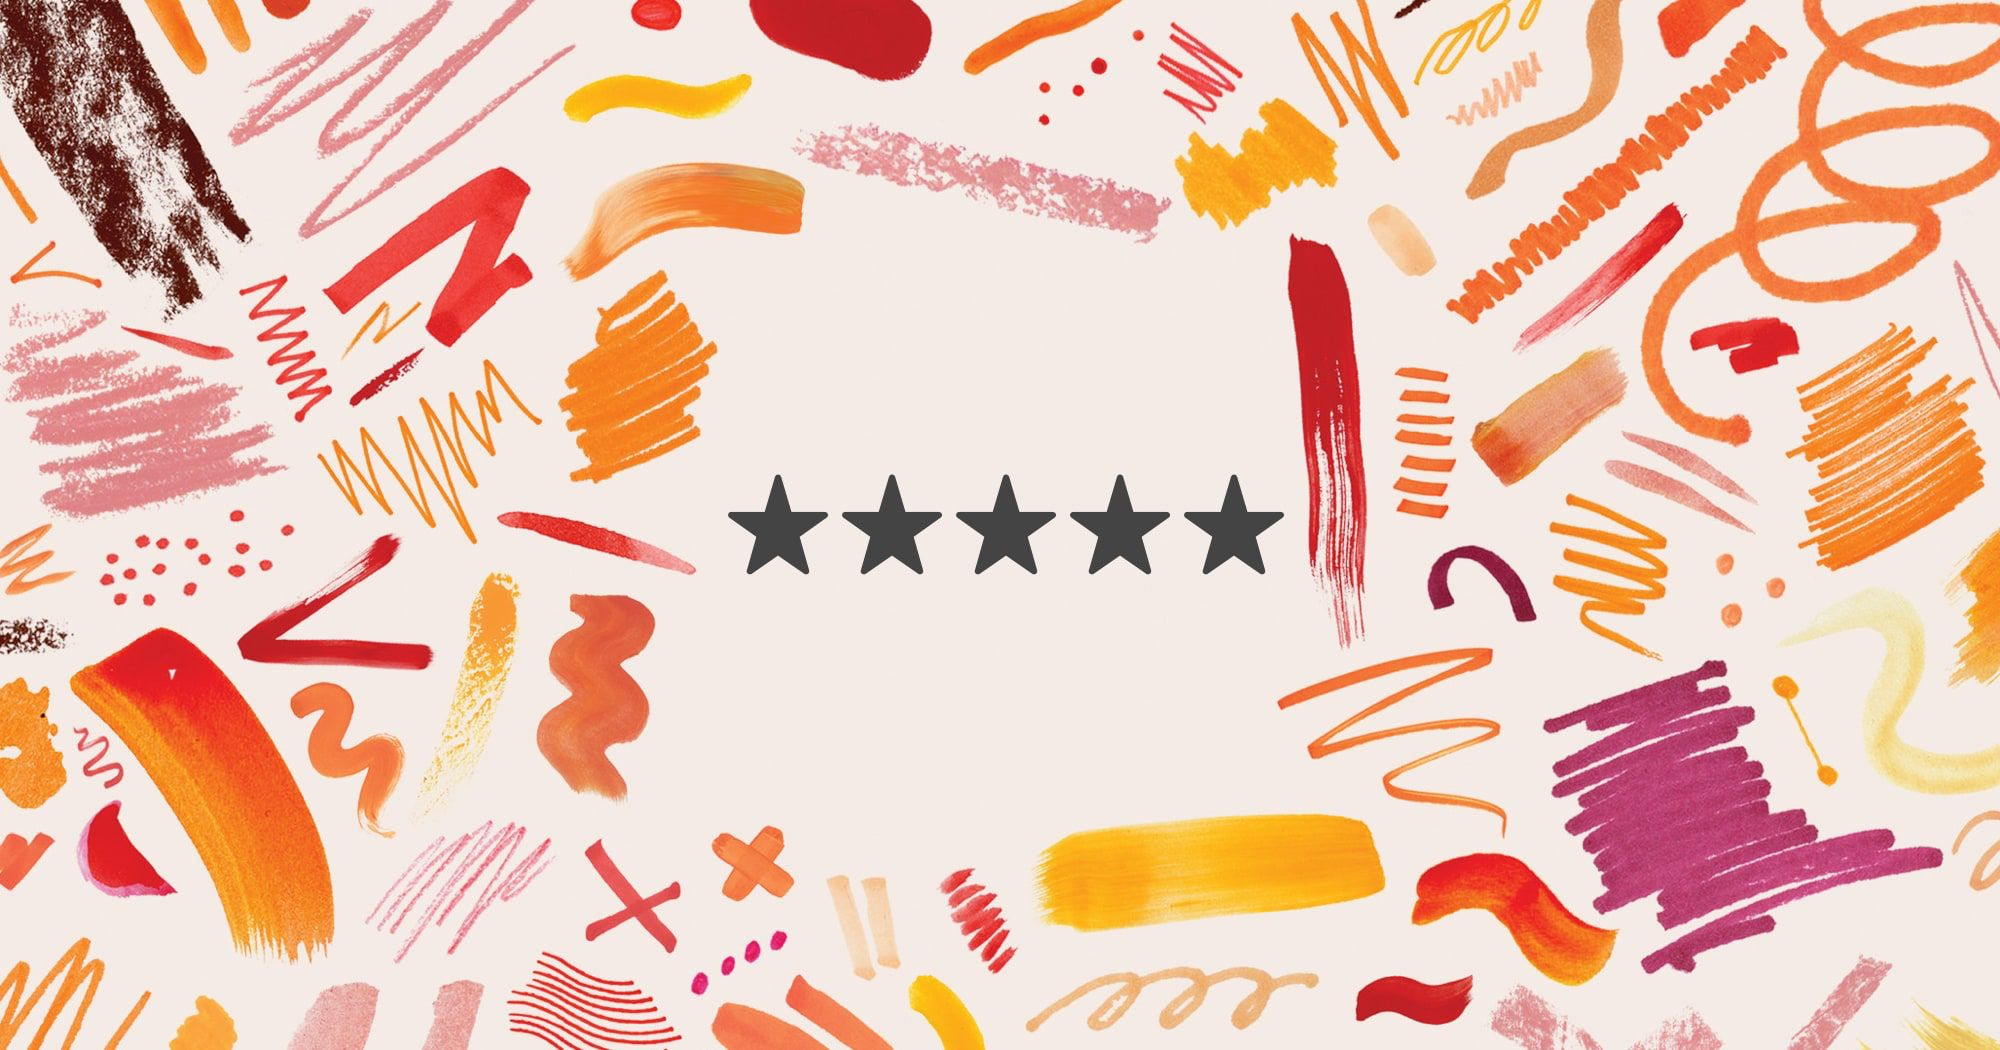 i earned 2 five star reviews nothing makes me prouder than another